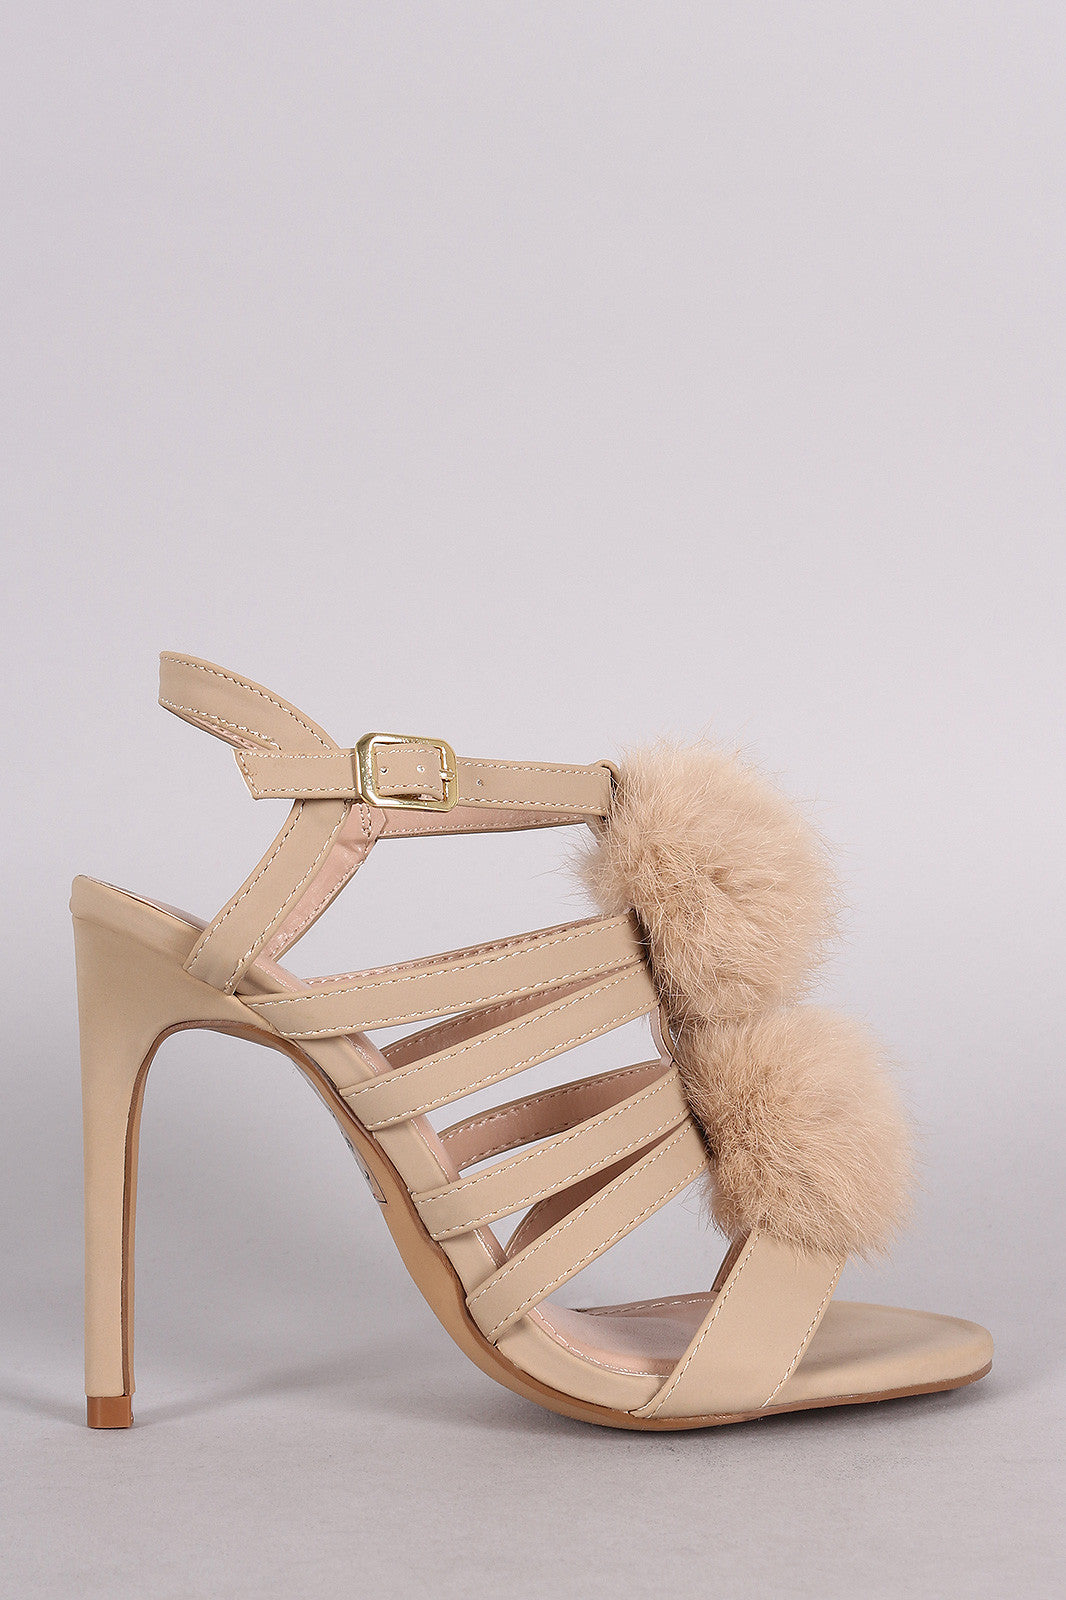 Shoe Republic LA Nubuck Strappy Pom Pom Stiletto Heel - Thick 'N' Curvy Shop - 4